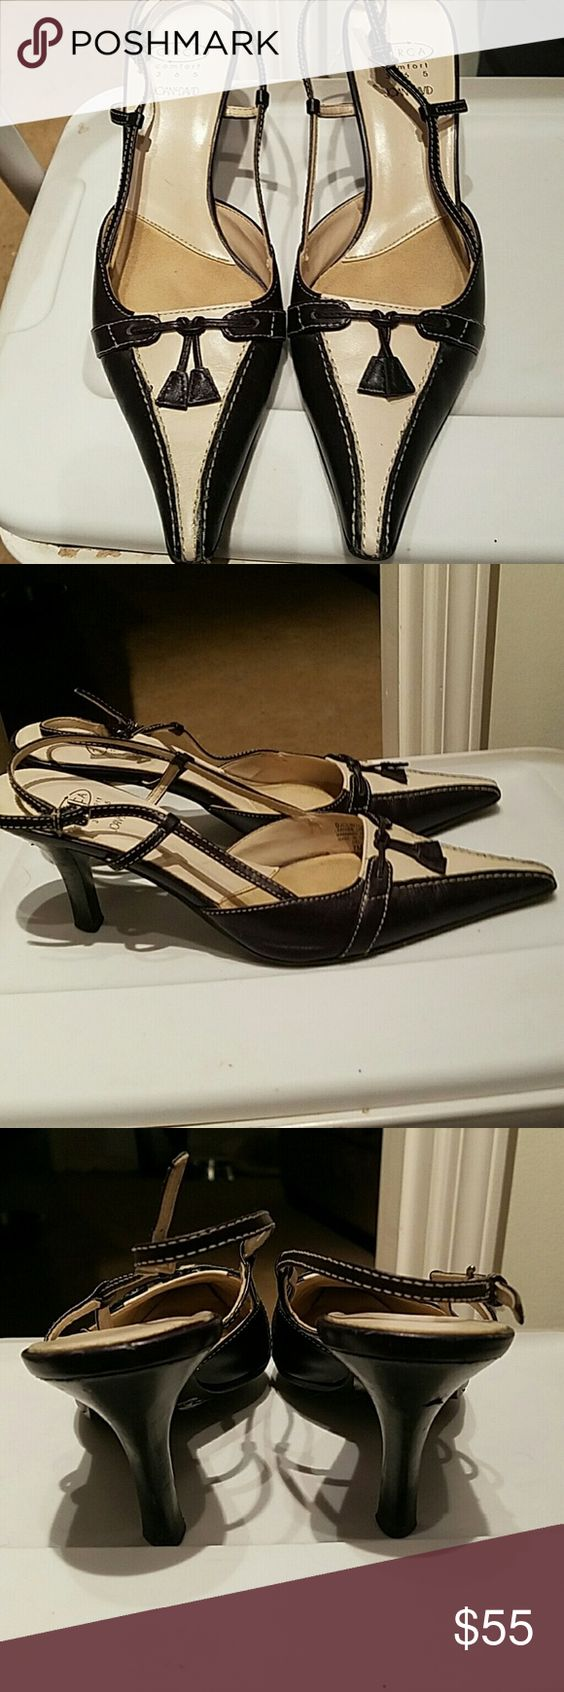 "Joan & David Circa Comfort Navy Blue & Ivory Heels This is a pair of Joan & David Circa Comfort heels!  These shoes have a nice rubber type sole, size US 7, pointed toes, w/tassels! Good-looking heels that r approx 3 1/2"". Joan & David Shoes Heels"